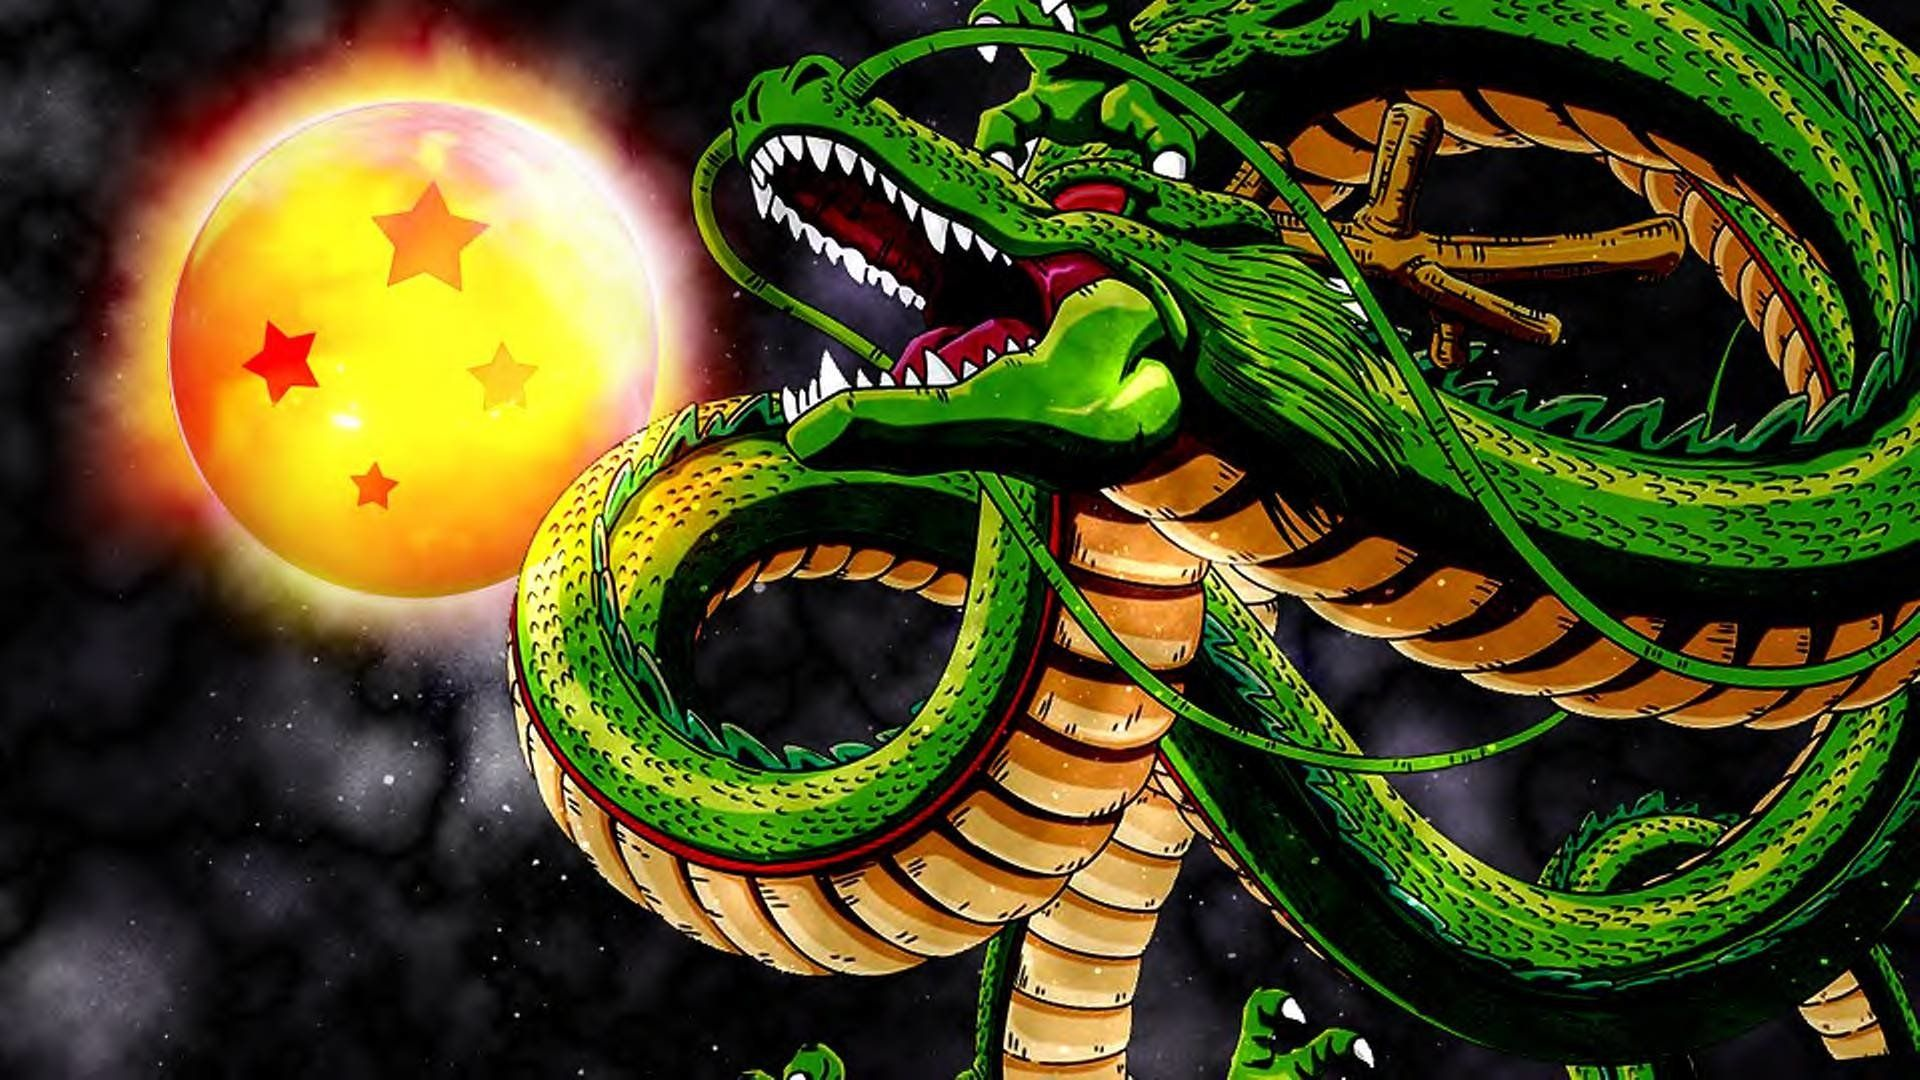 Shenron Wallpapers Top Free Shenron Backgrounds Wallpaperaccess